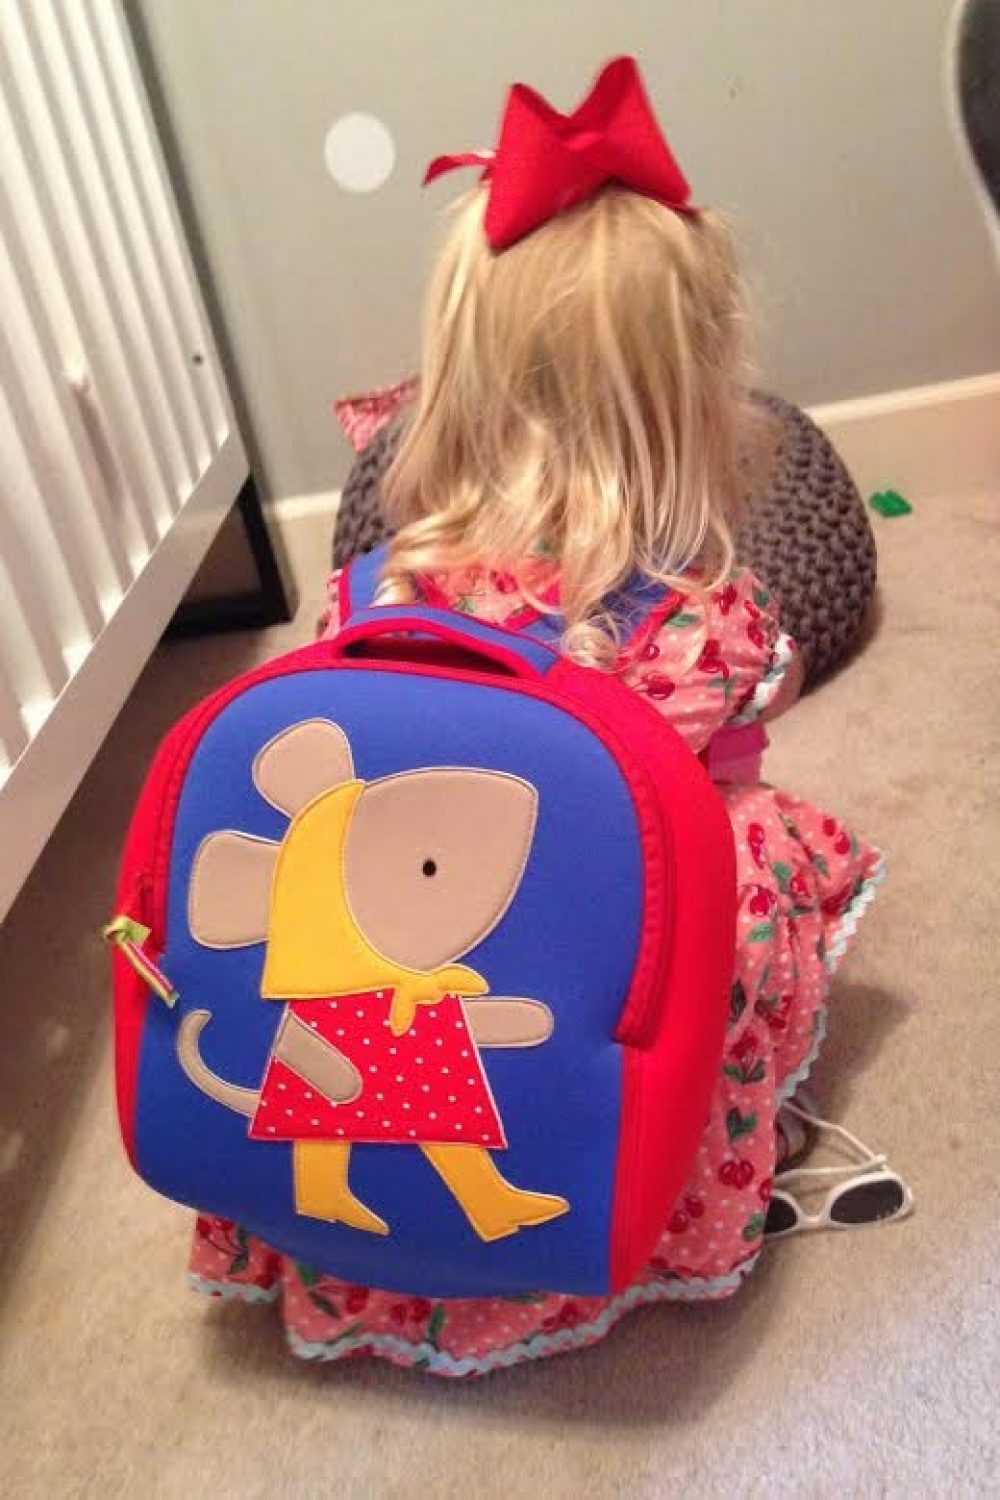 Whiny Wednesdays: Back to School Backpack